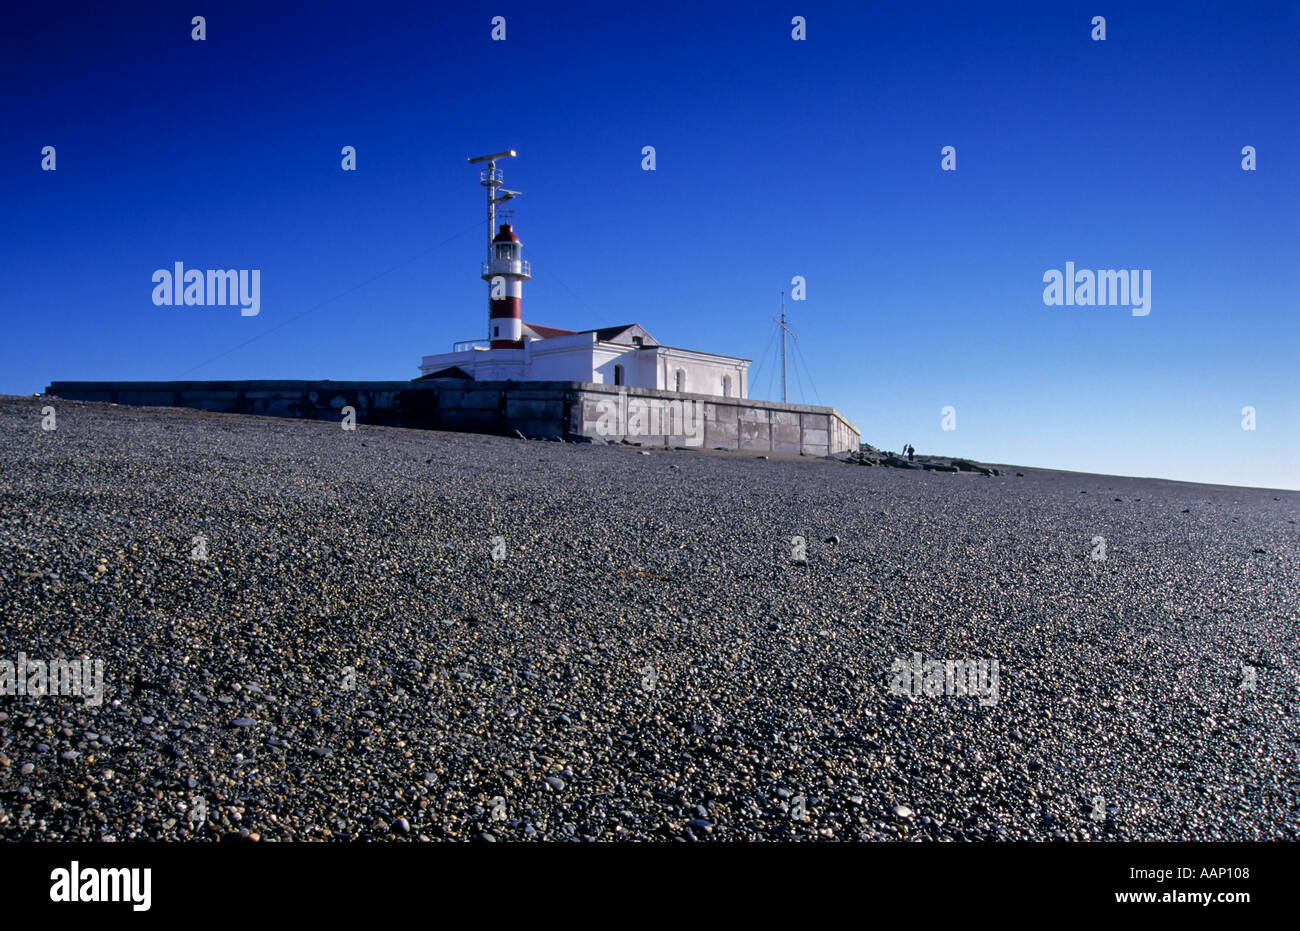 Lighthouse on the Straits of Magellan, Patagonia, Chile - Stock Image